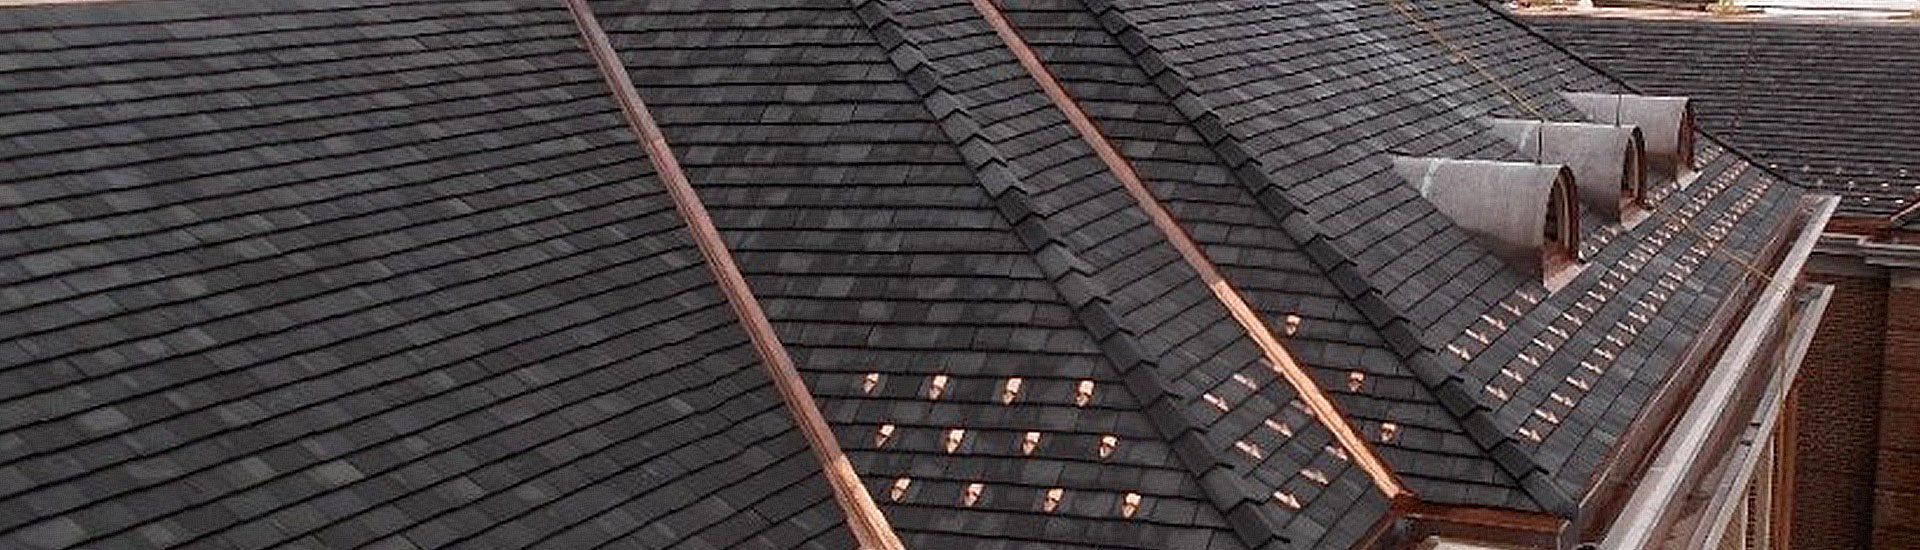 BlackmoreBucknerRoofing-Ohio